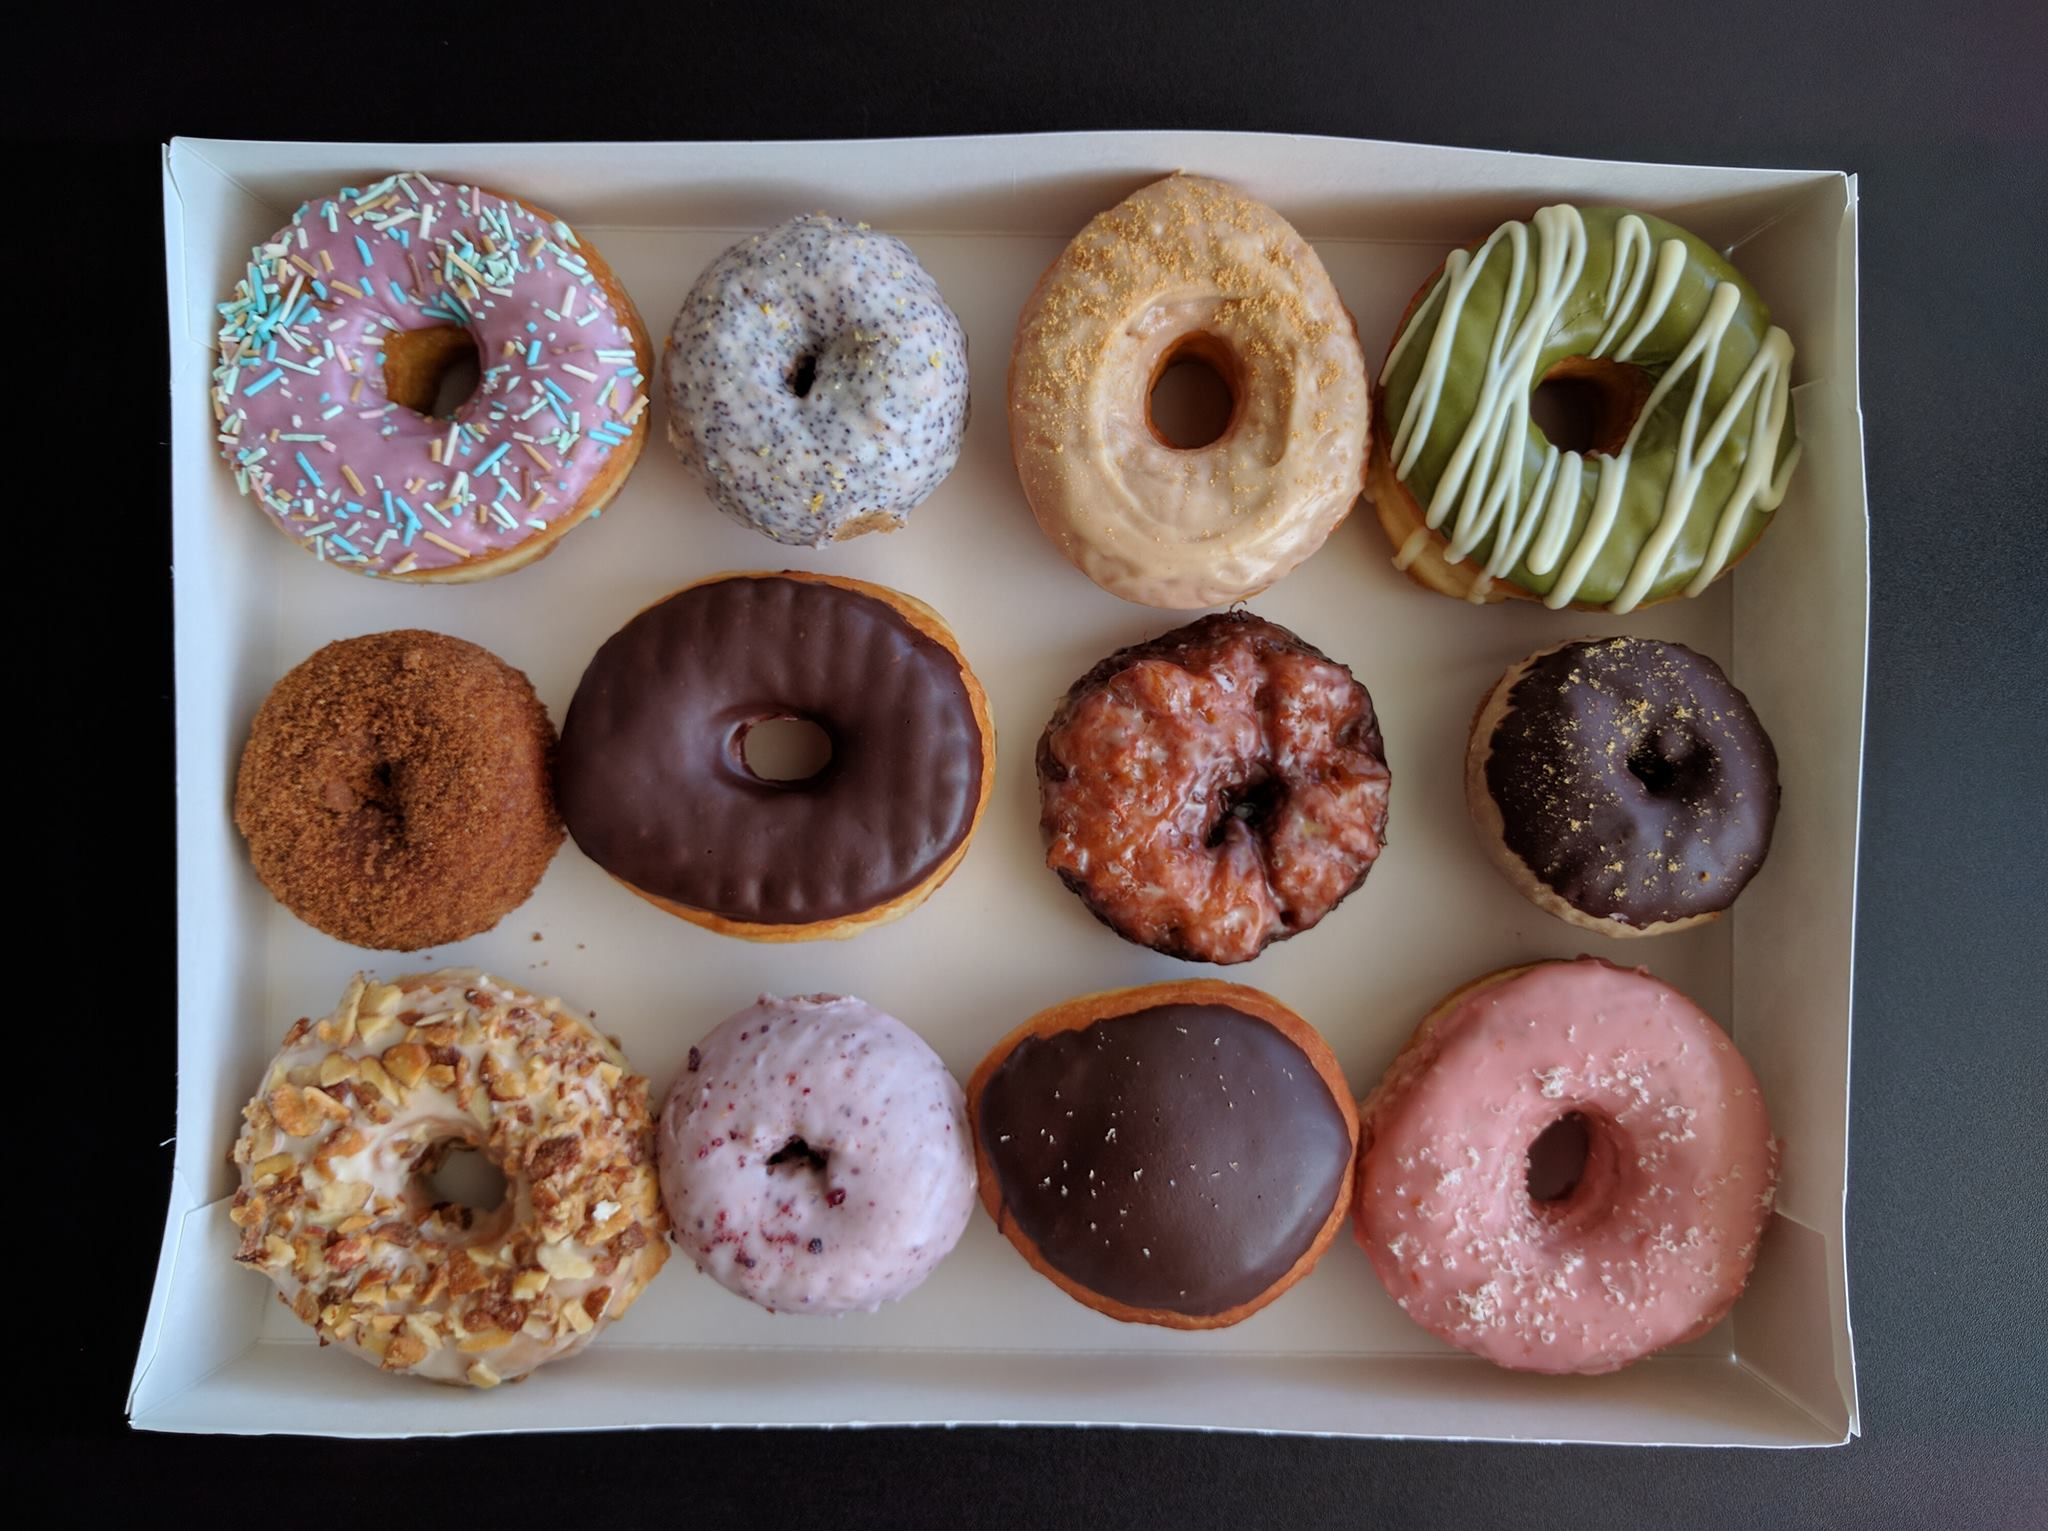 A box of Morningstar doughnuts covered in colorful glazes and sprinkles